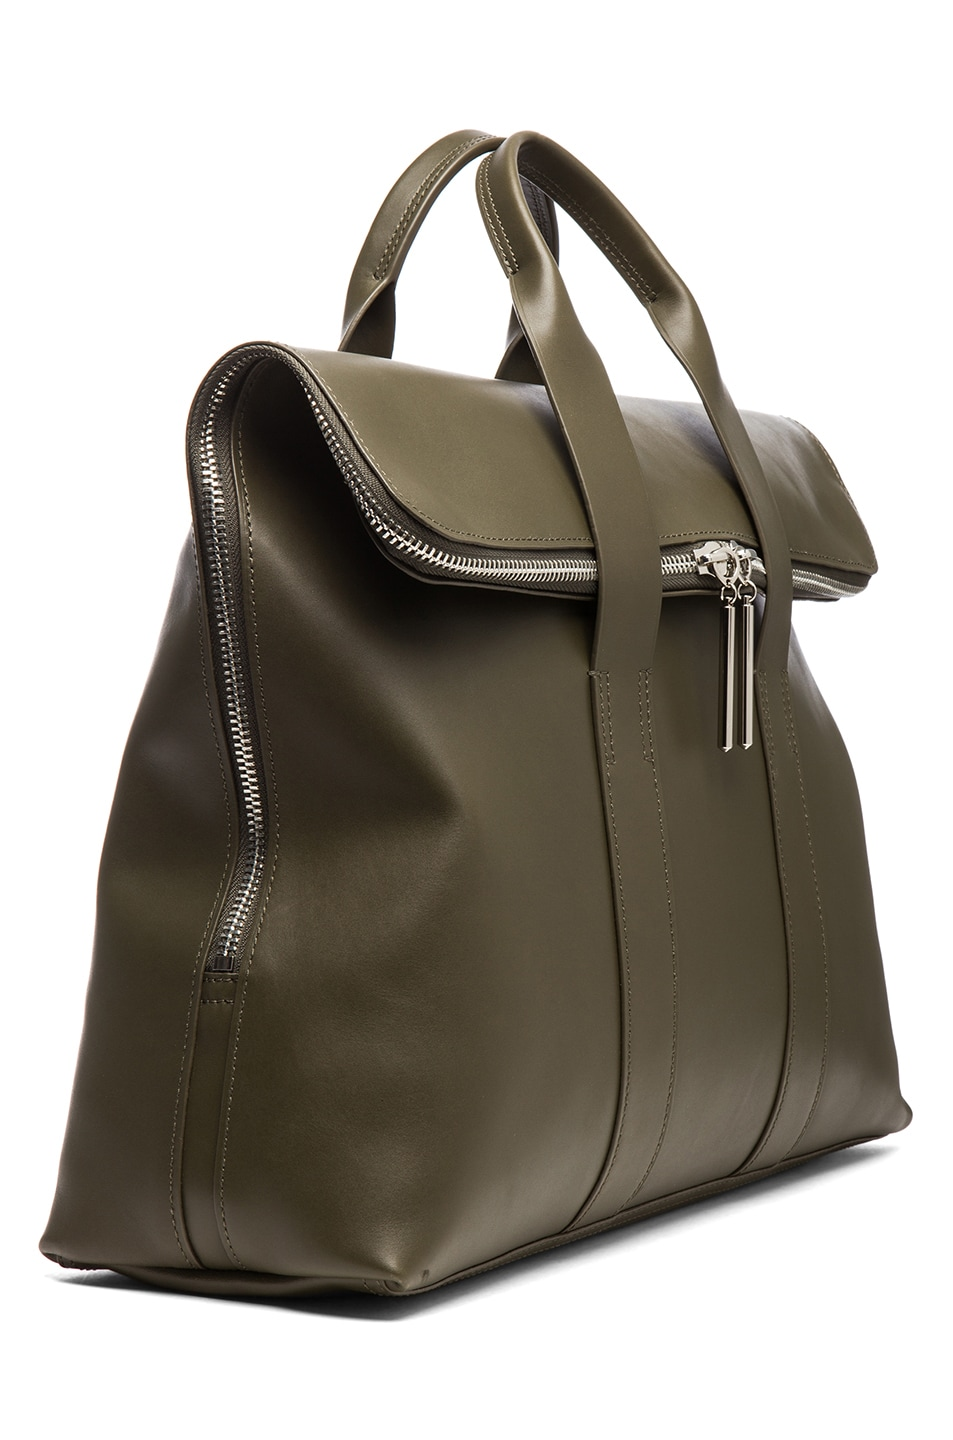 Image 3 of 3.1 phillip lim 31 Hour Bag in Dark Olive